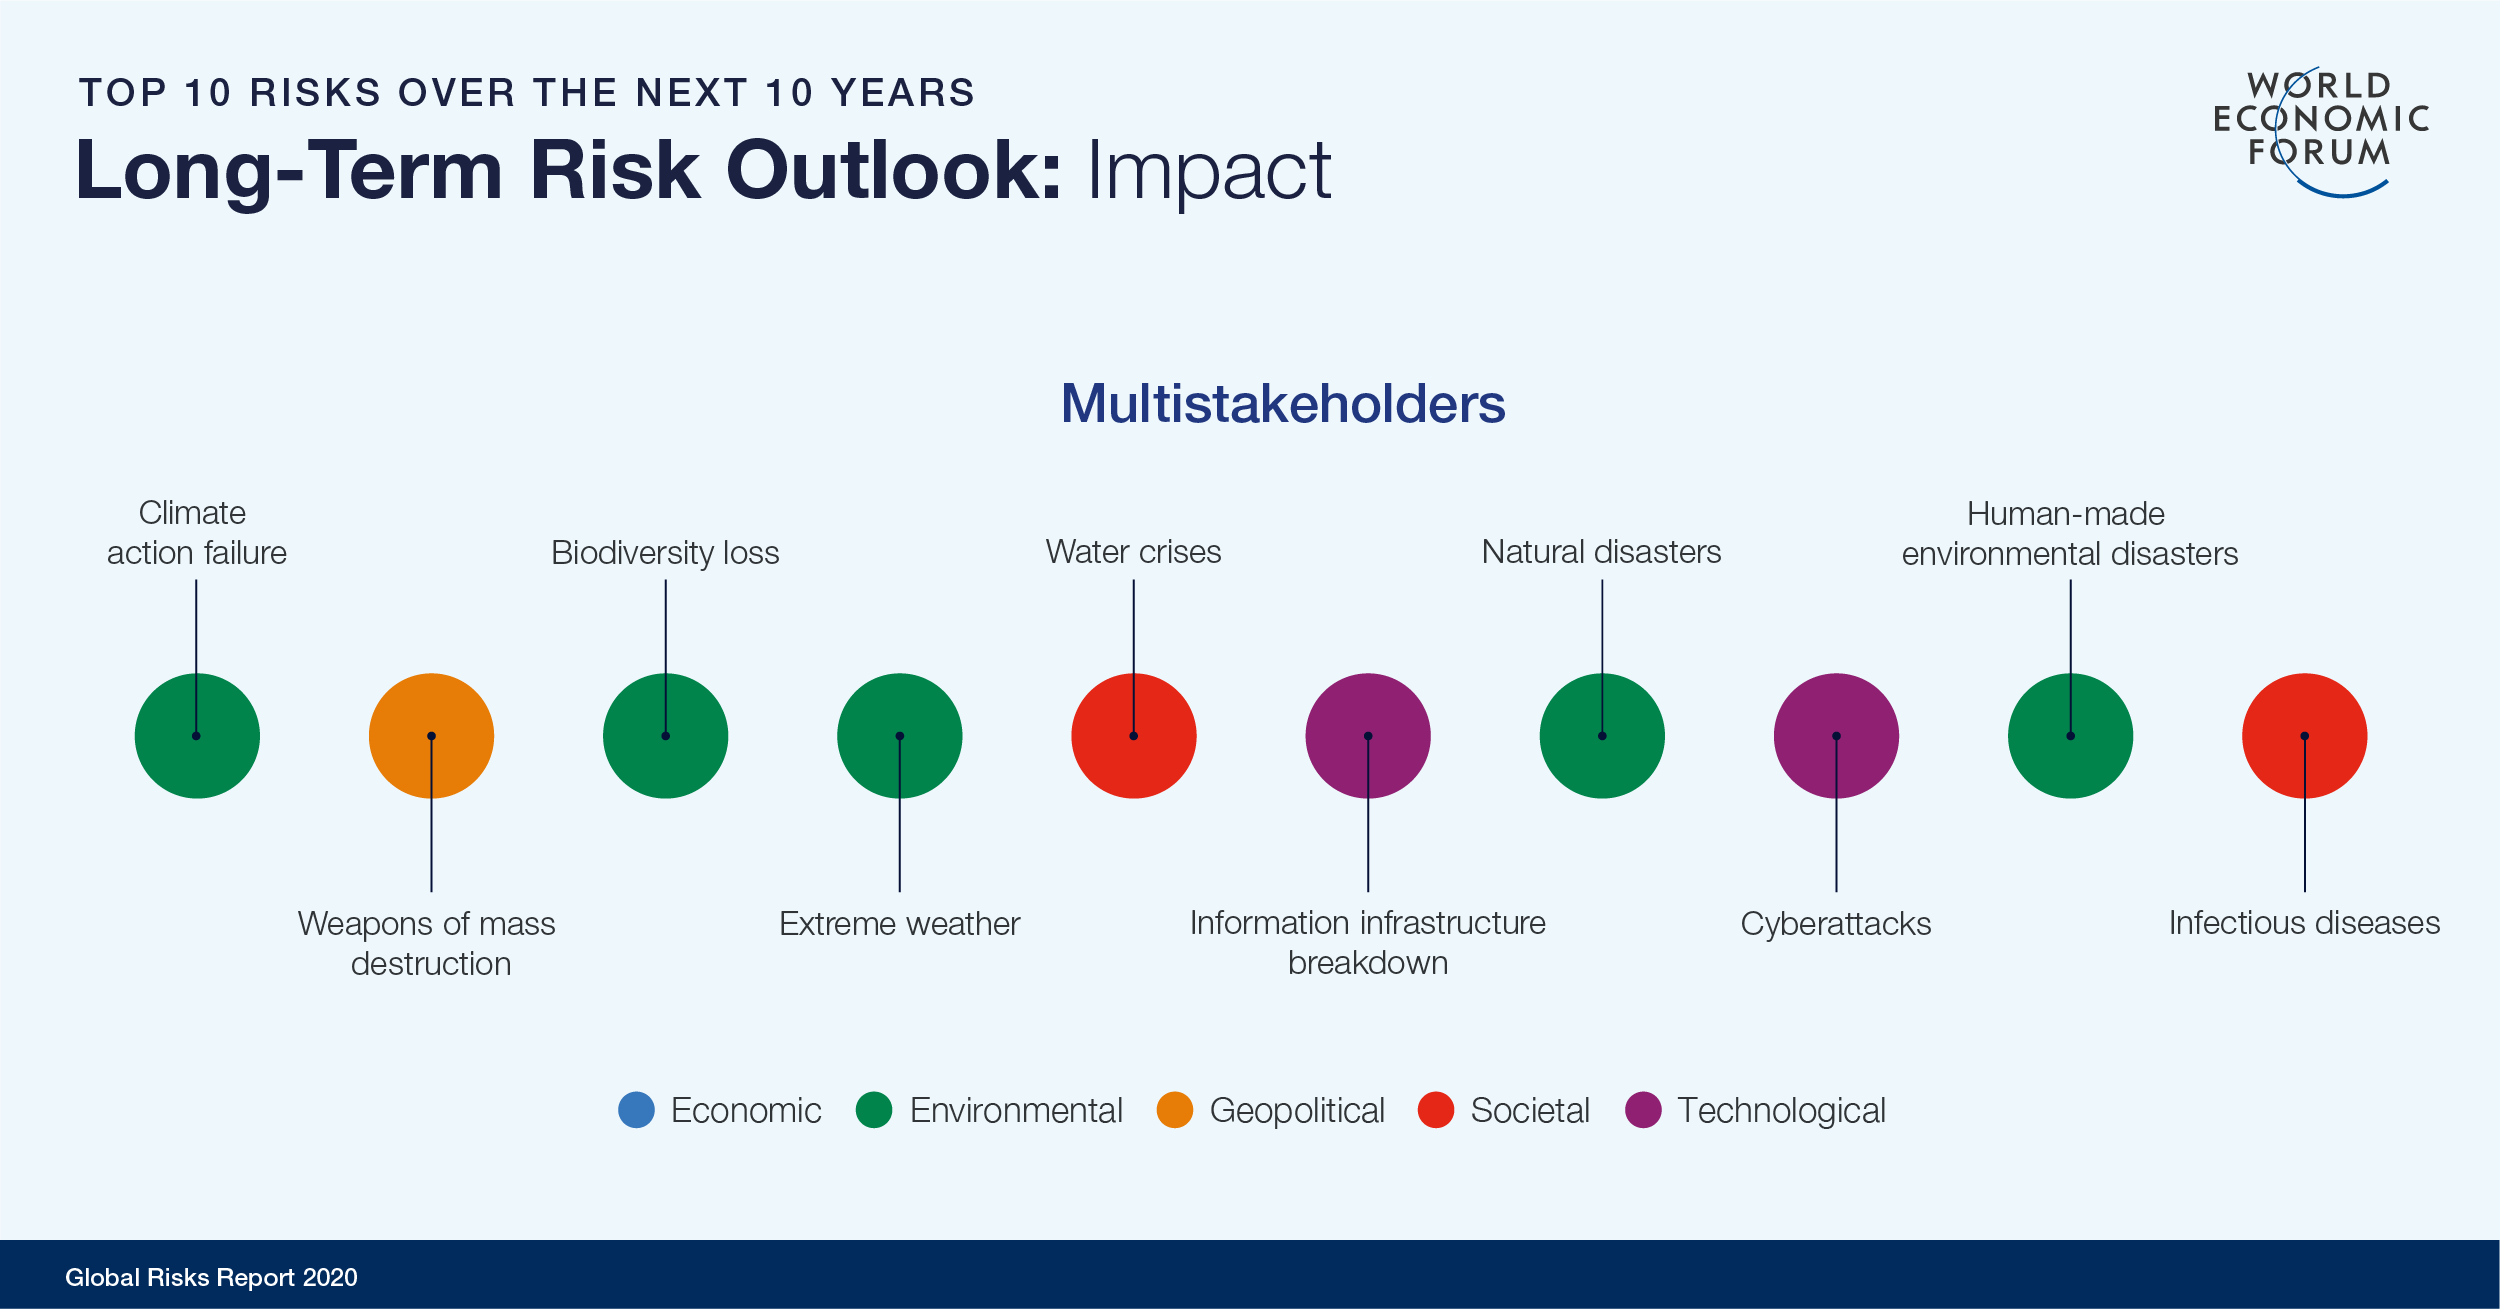 Top 10 risks over the next 10 years